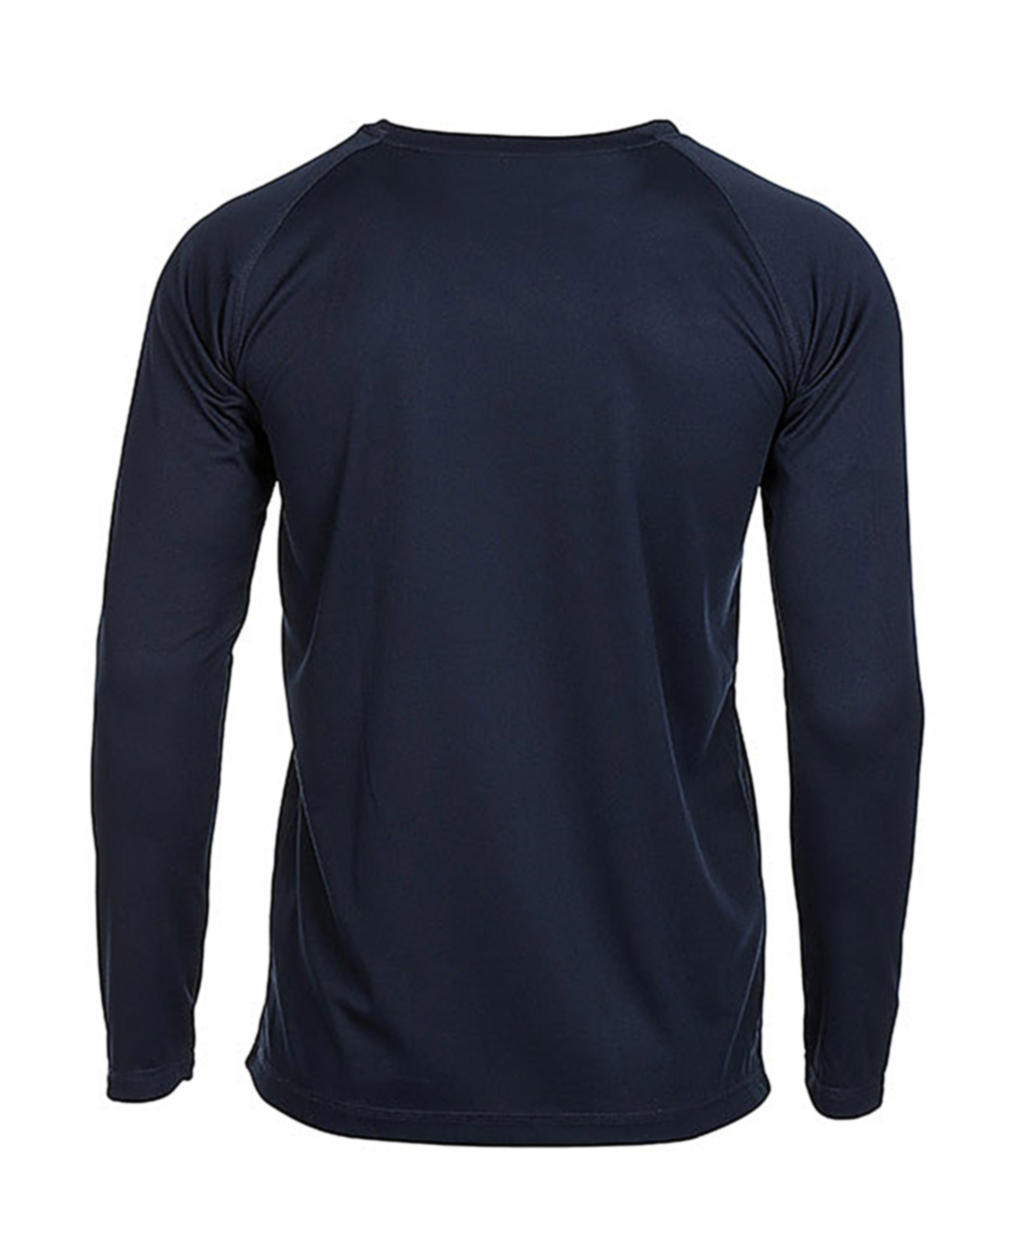 Stedman Active 140 LS Men